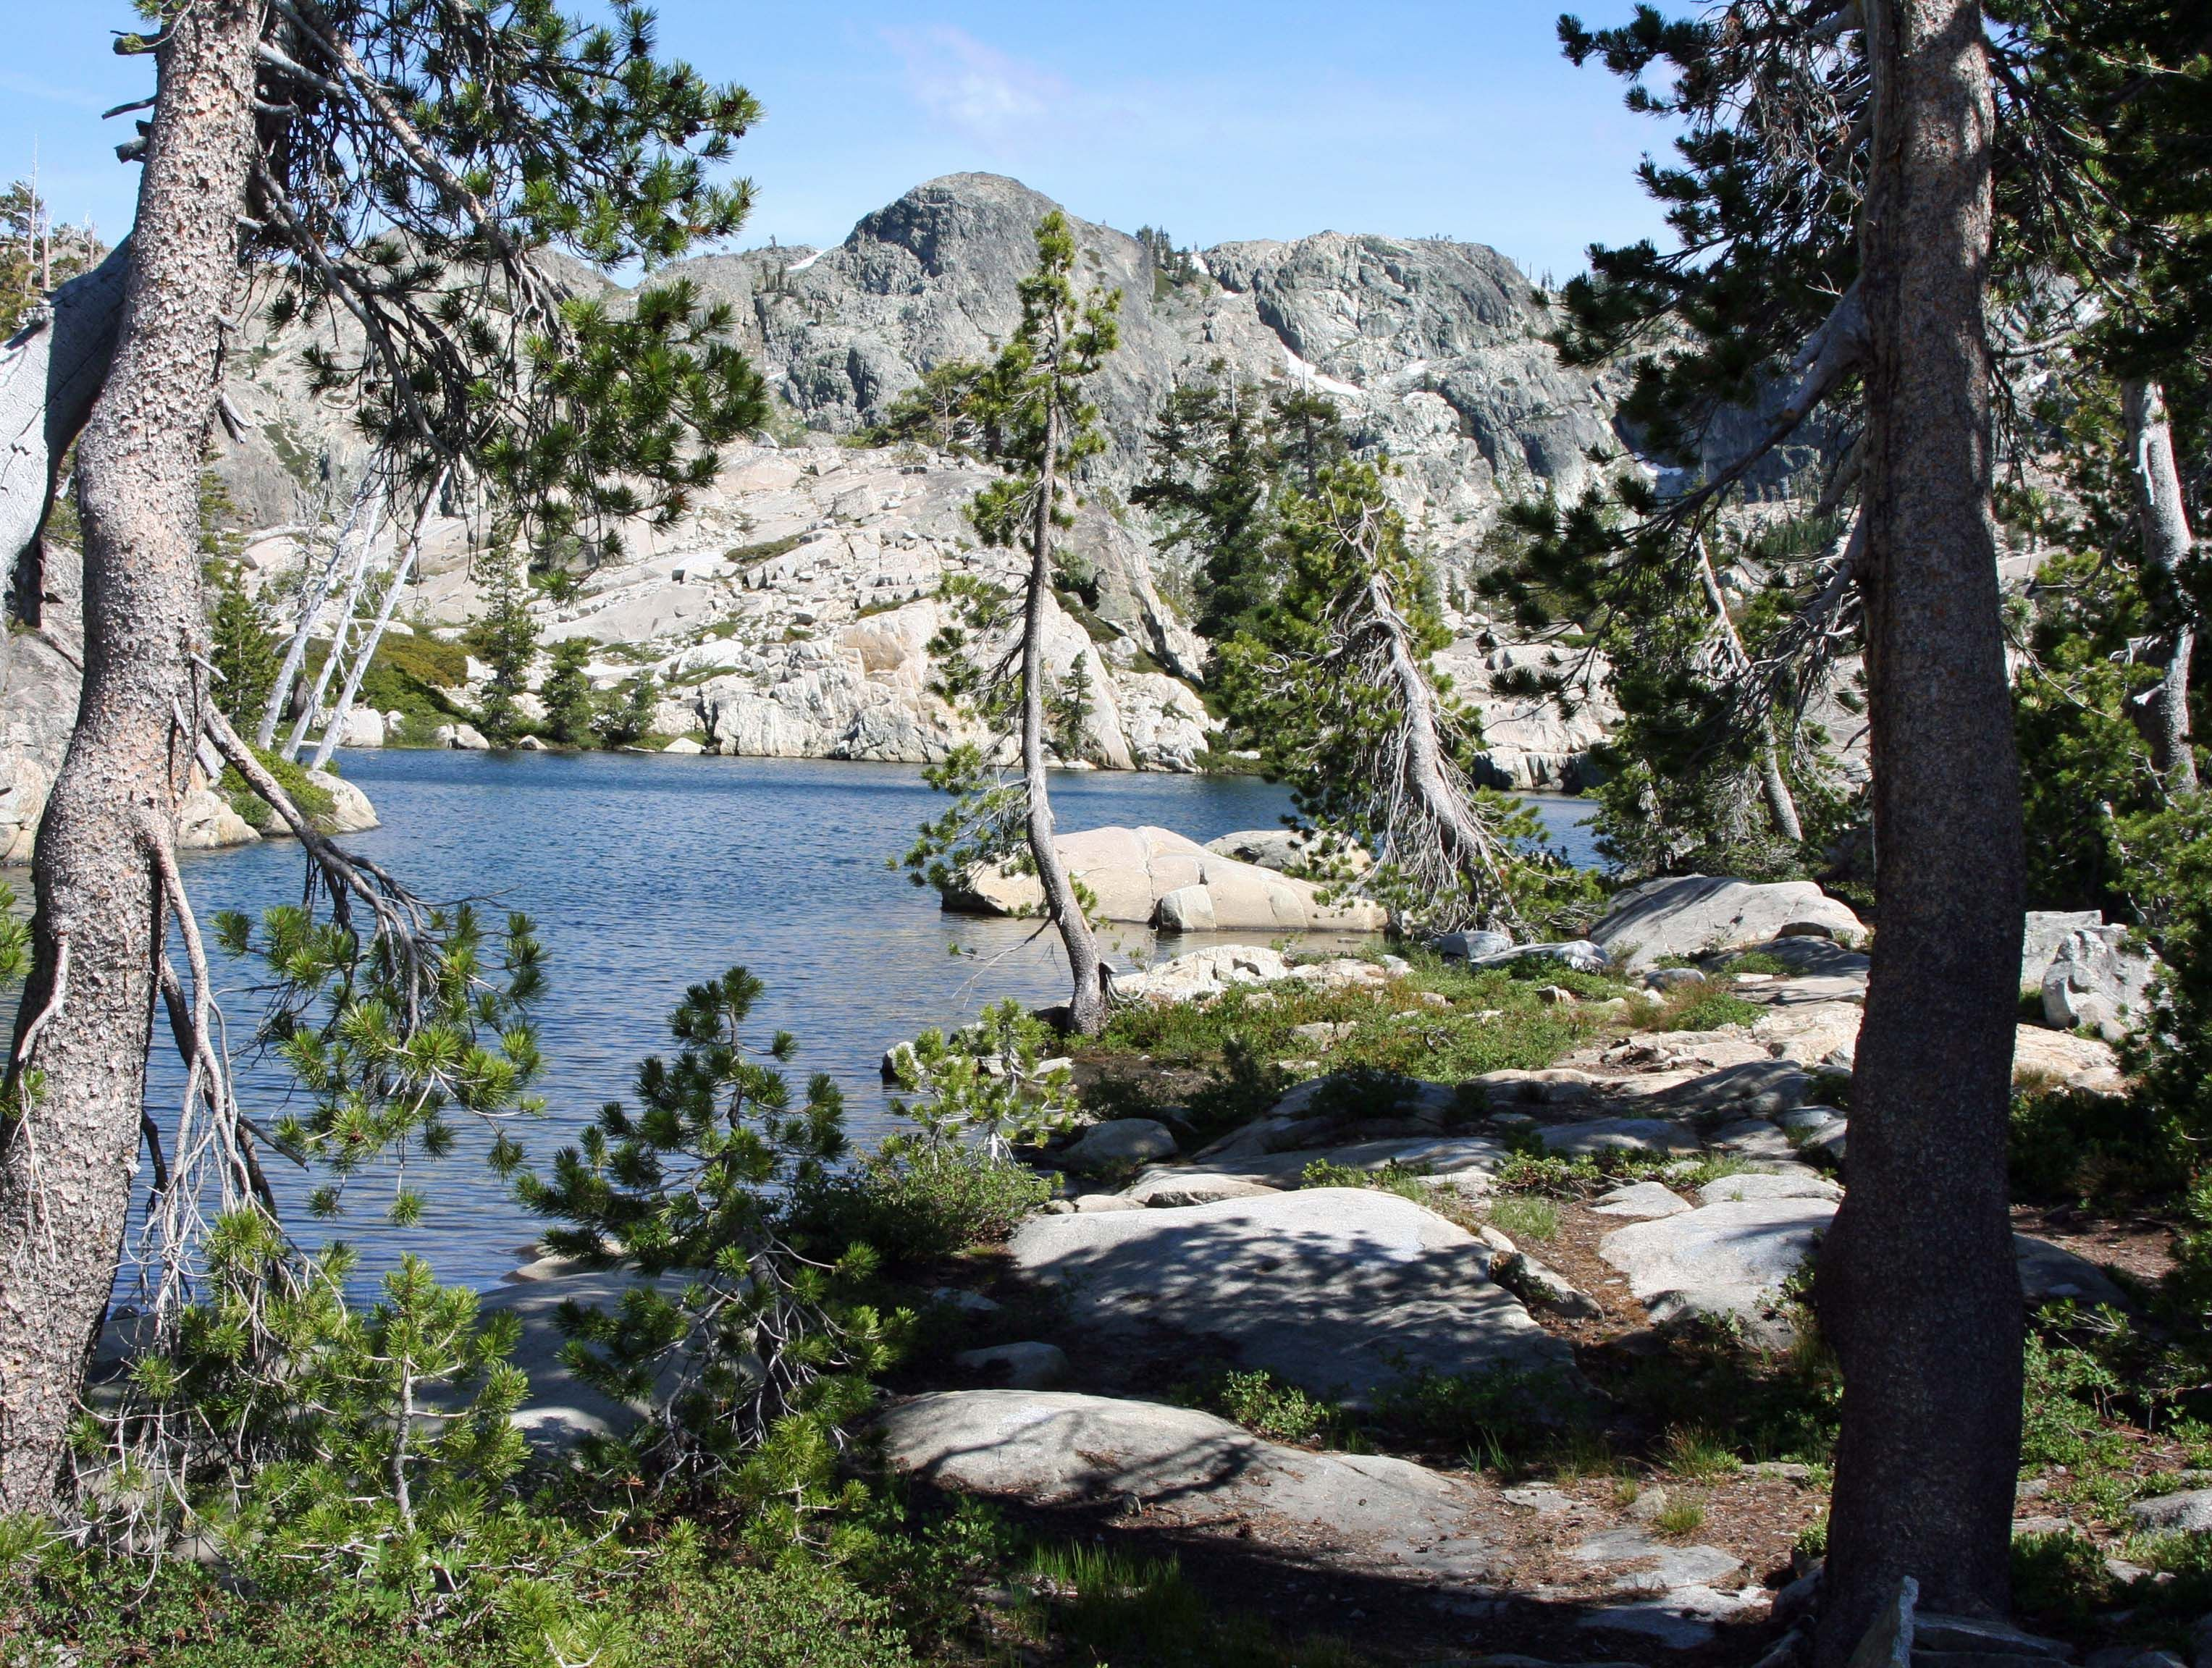 The Five Lakes Basin north of Interstate 80 in the northern Sierra's of California.